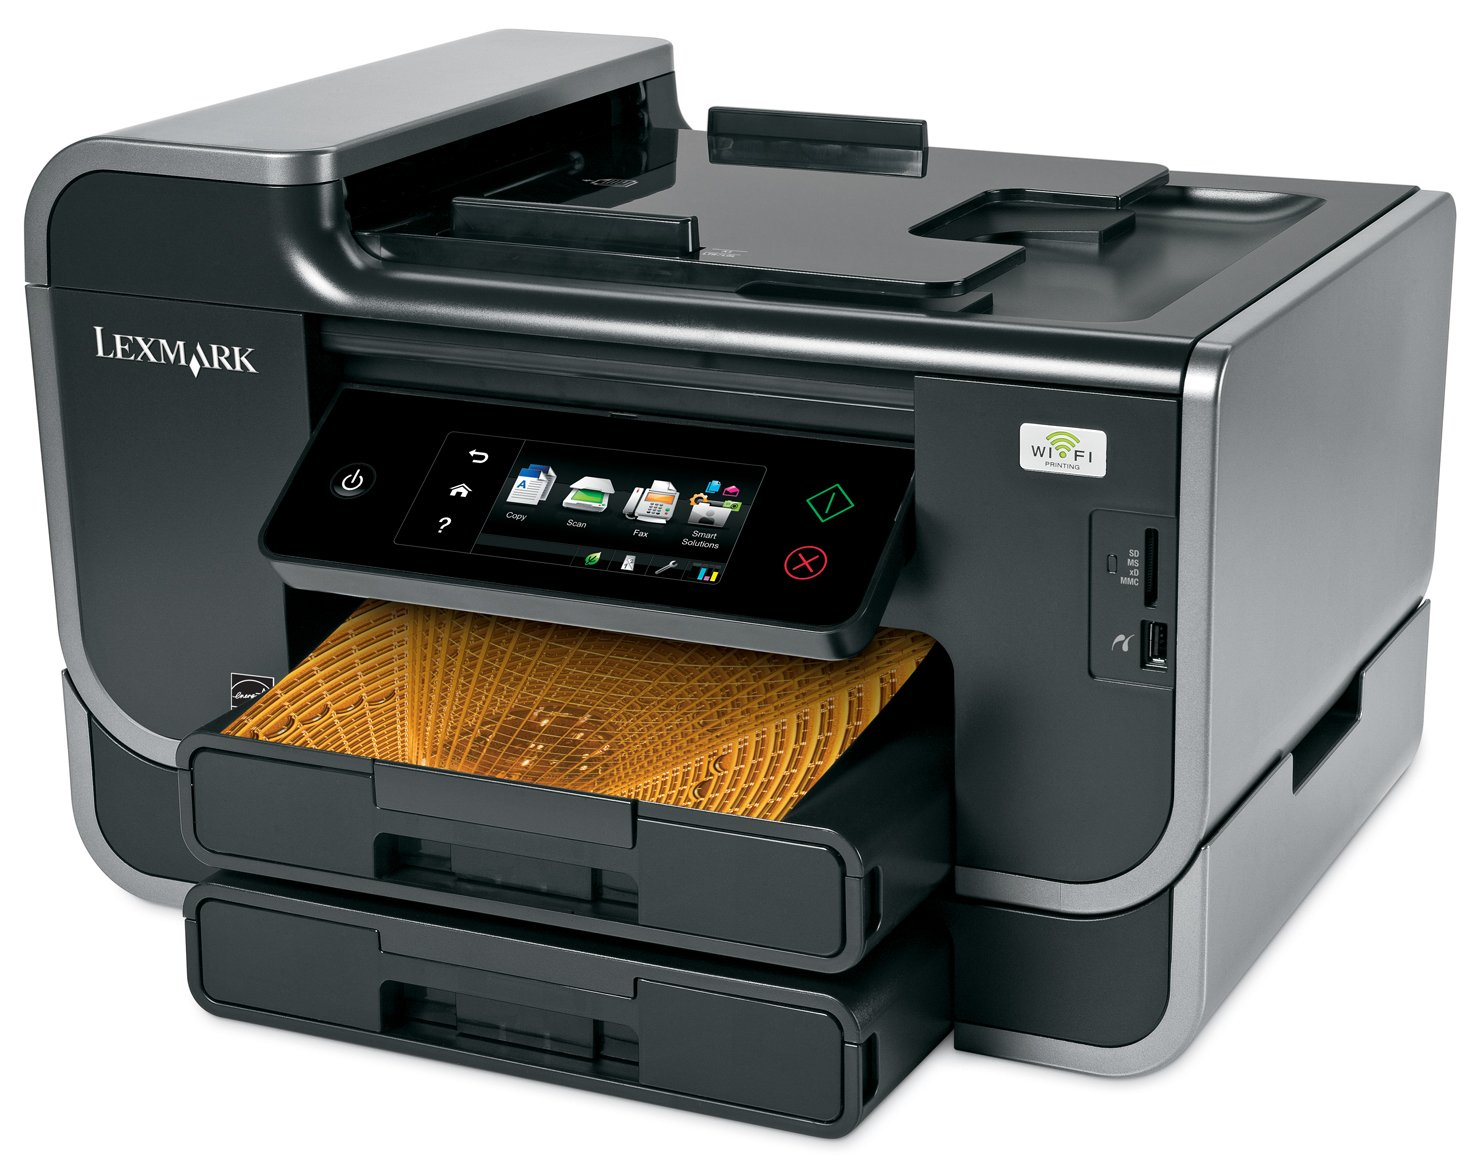 Lexmark Platinum Pro905 Business Class Wireless Multifunction Inkjet Printer with Web-Enabled Touchscreen by Lexmark (Image #2)